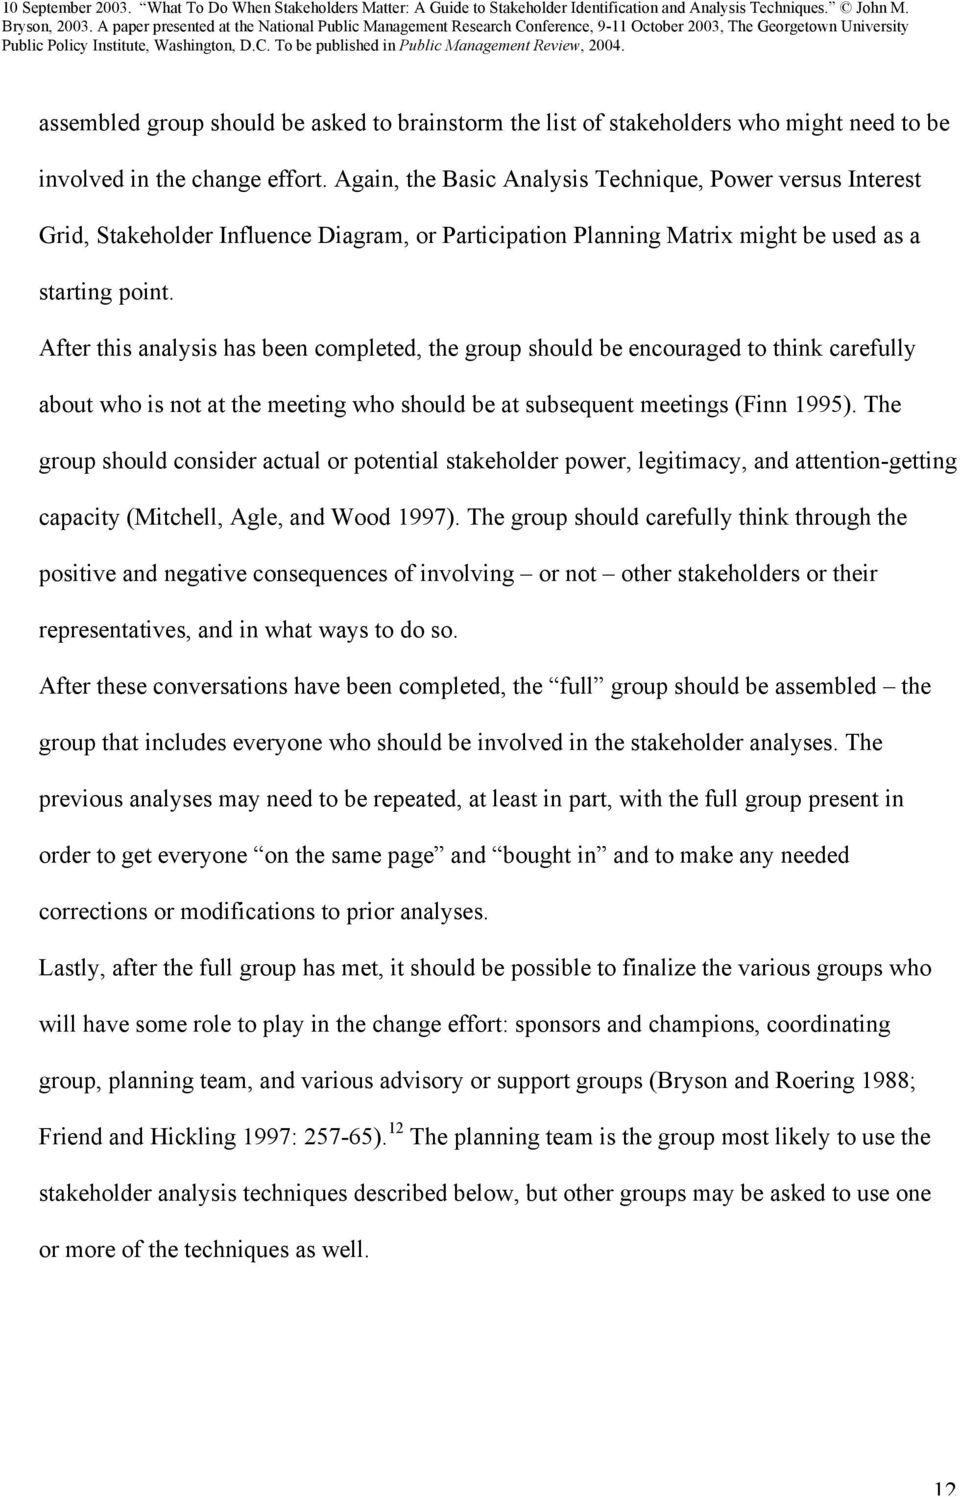 After this analysis has been completed, the group should be encouraged to think carefully about who is not at the meeting who should be at subsequent meetings (Finn 1995).